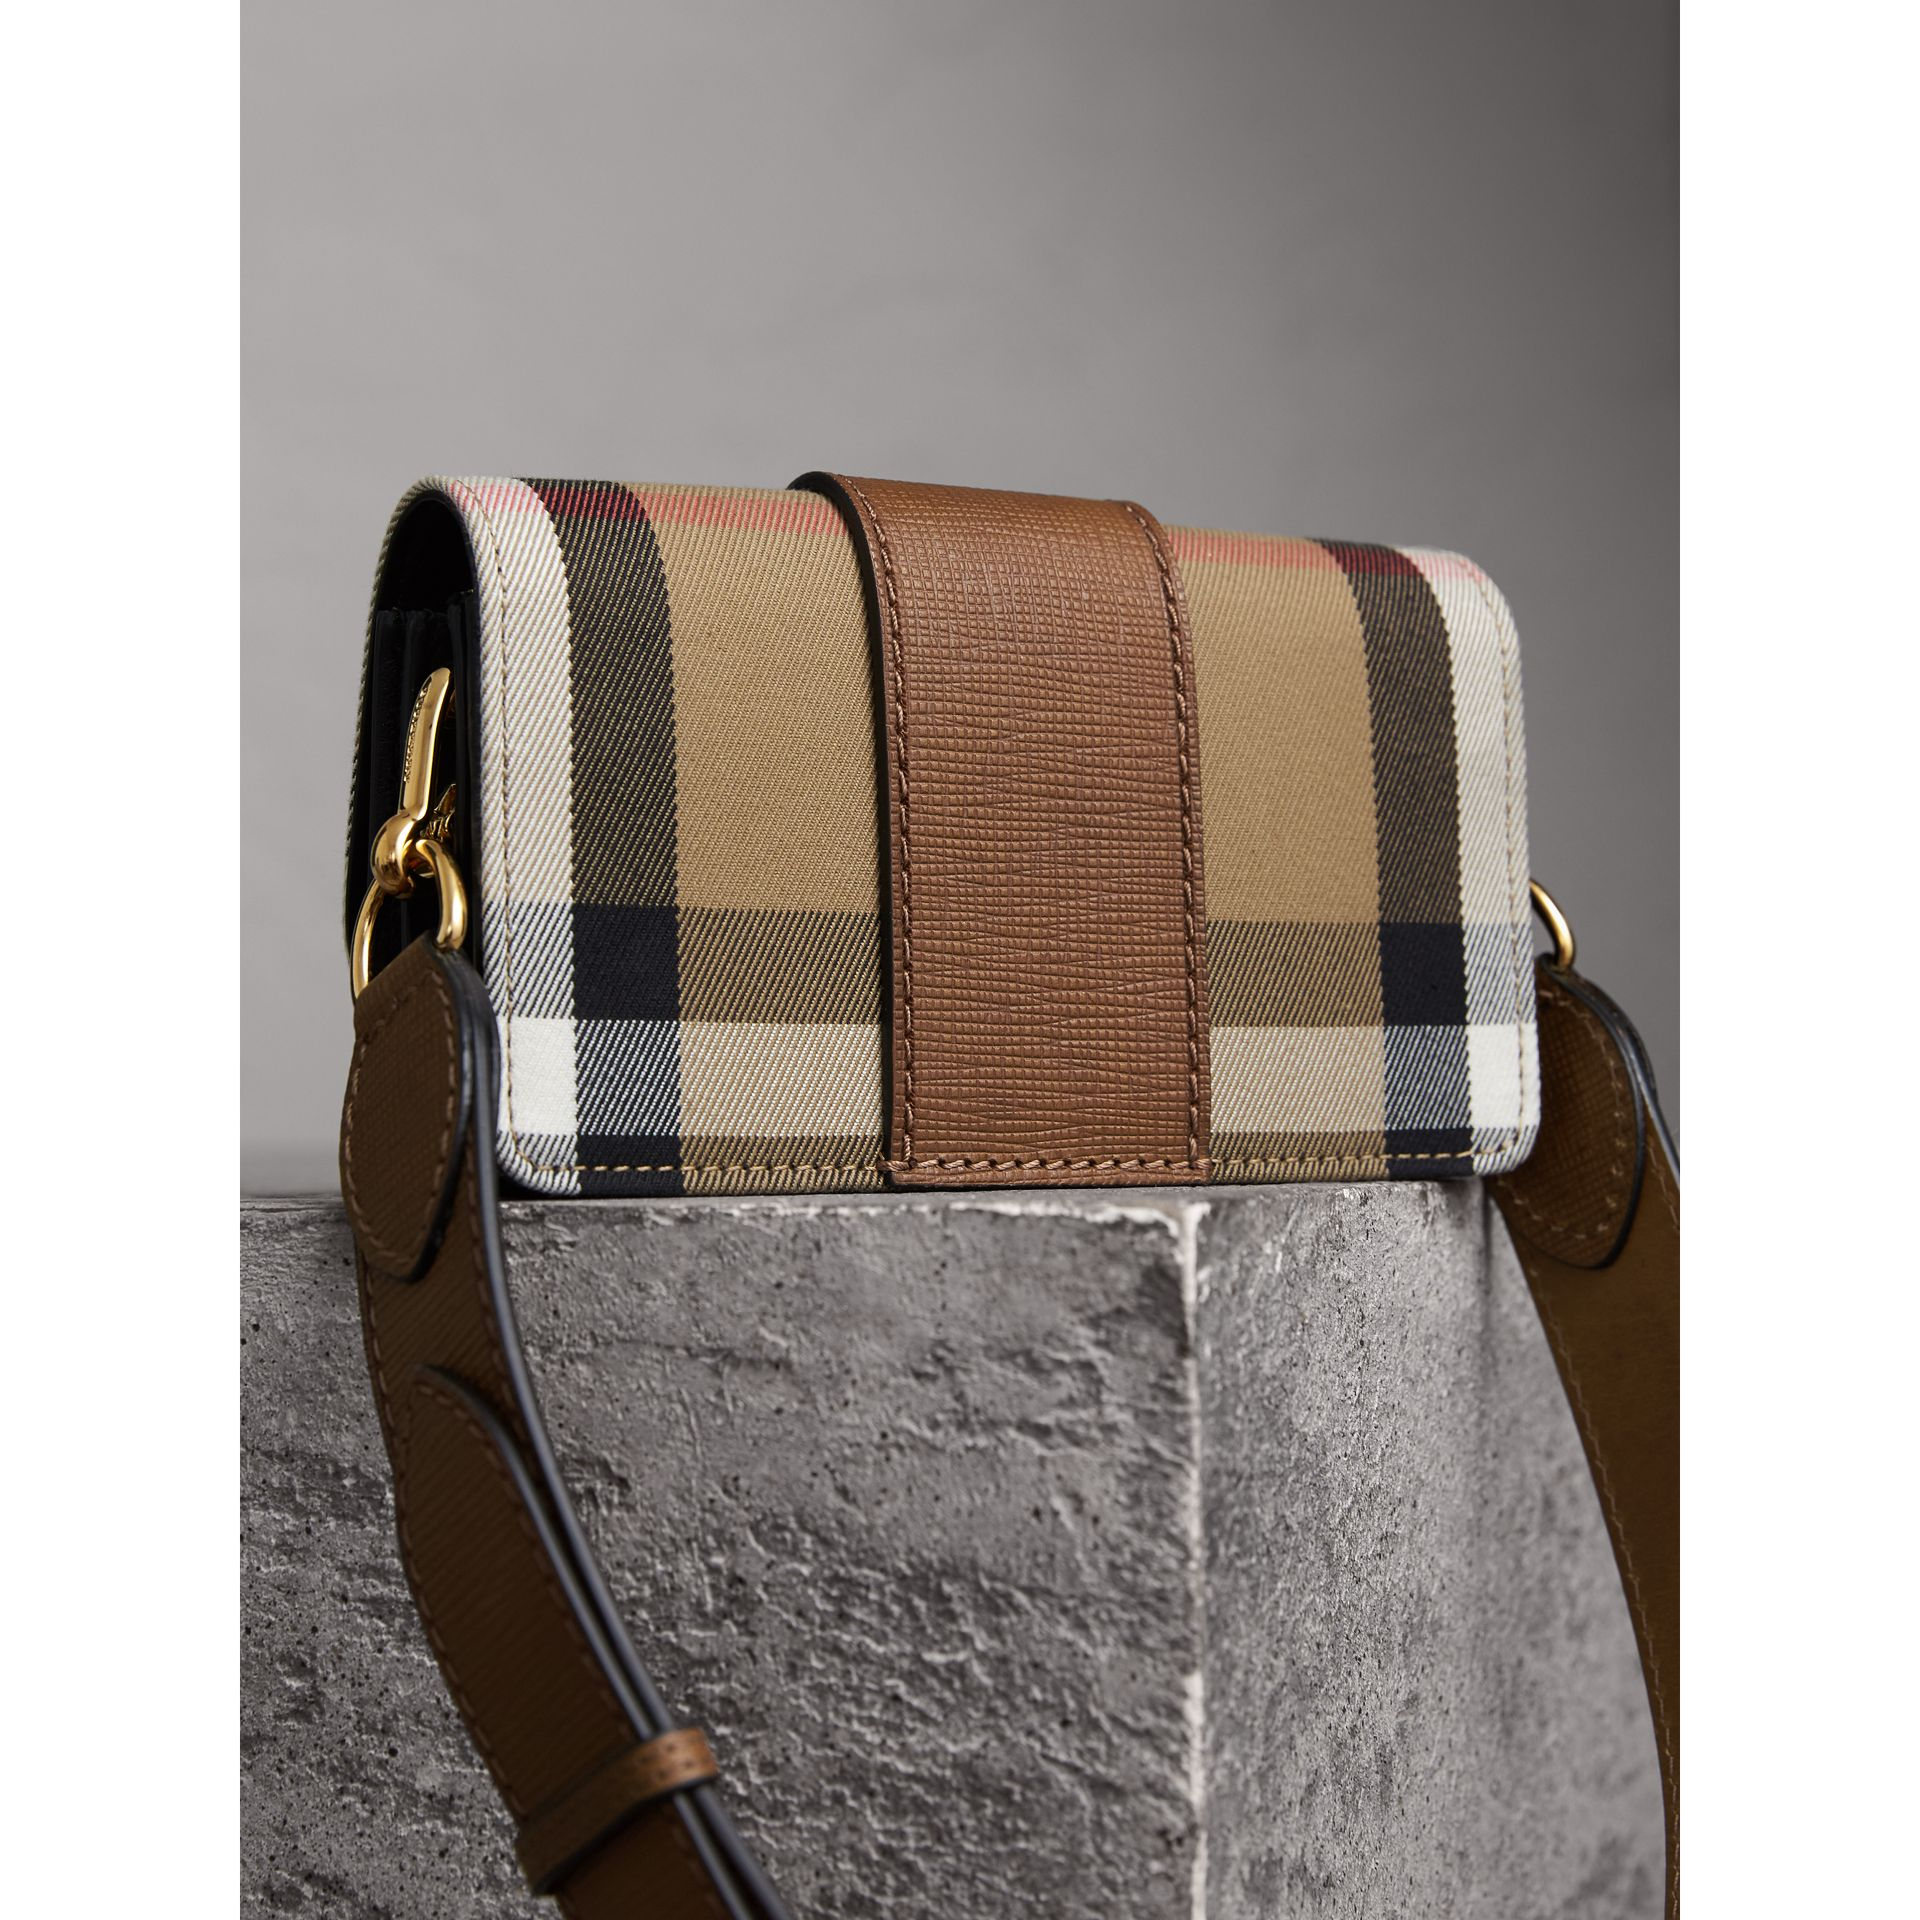 Petit sac The Buckle en coton House check et cuir (Hâle) - Femme | Burberry - photo de la galerie 4